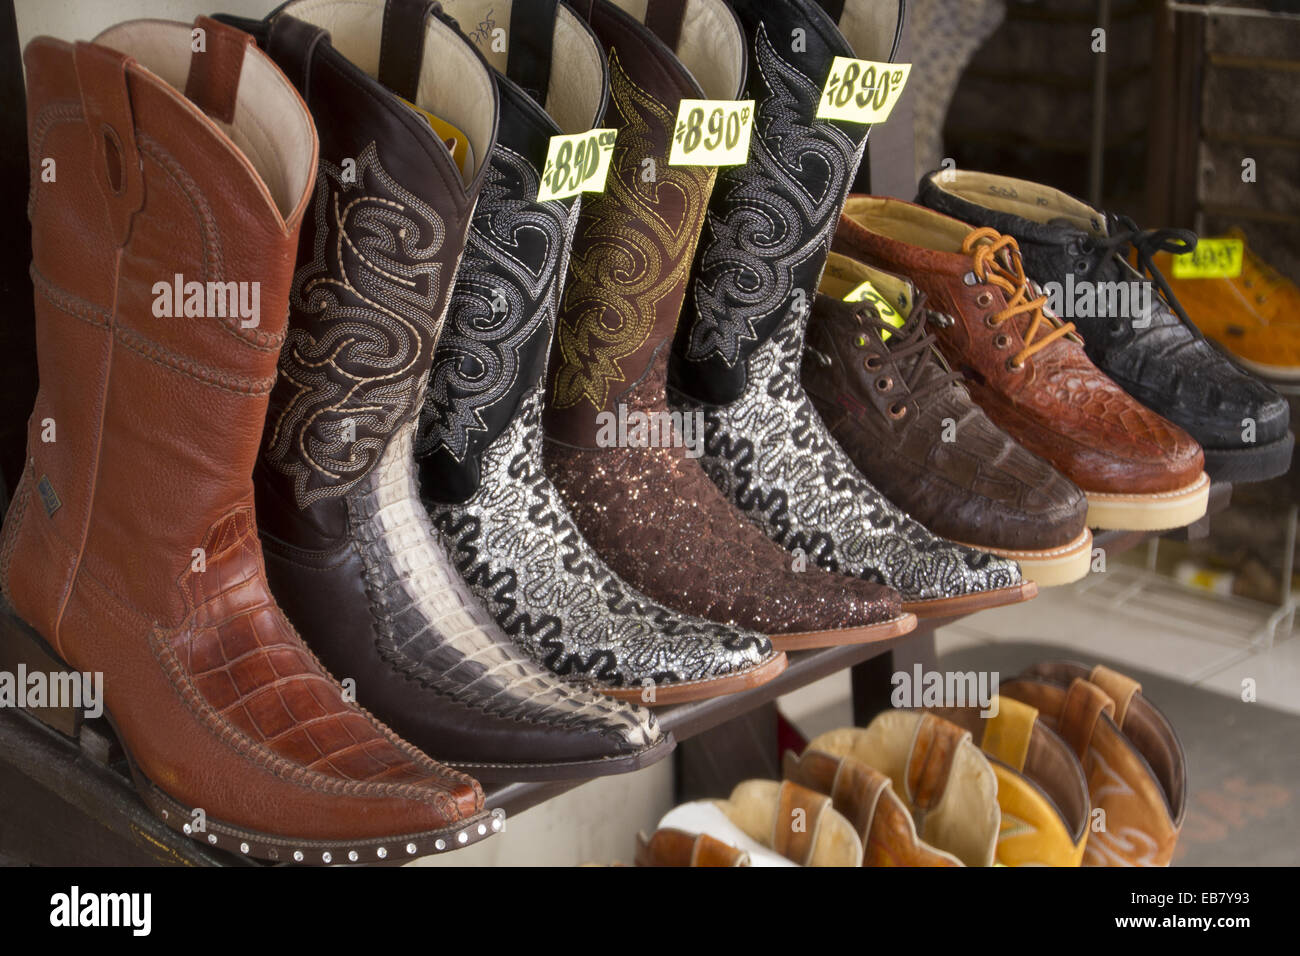 Botas vaqueras cowboy boots Northern Mexico Stock Photo 75777775